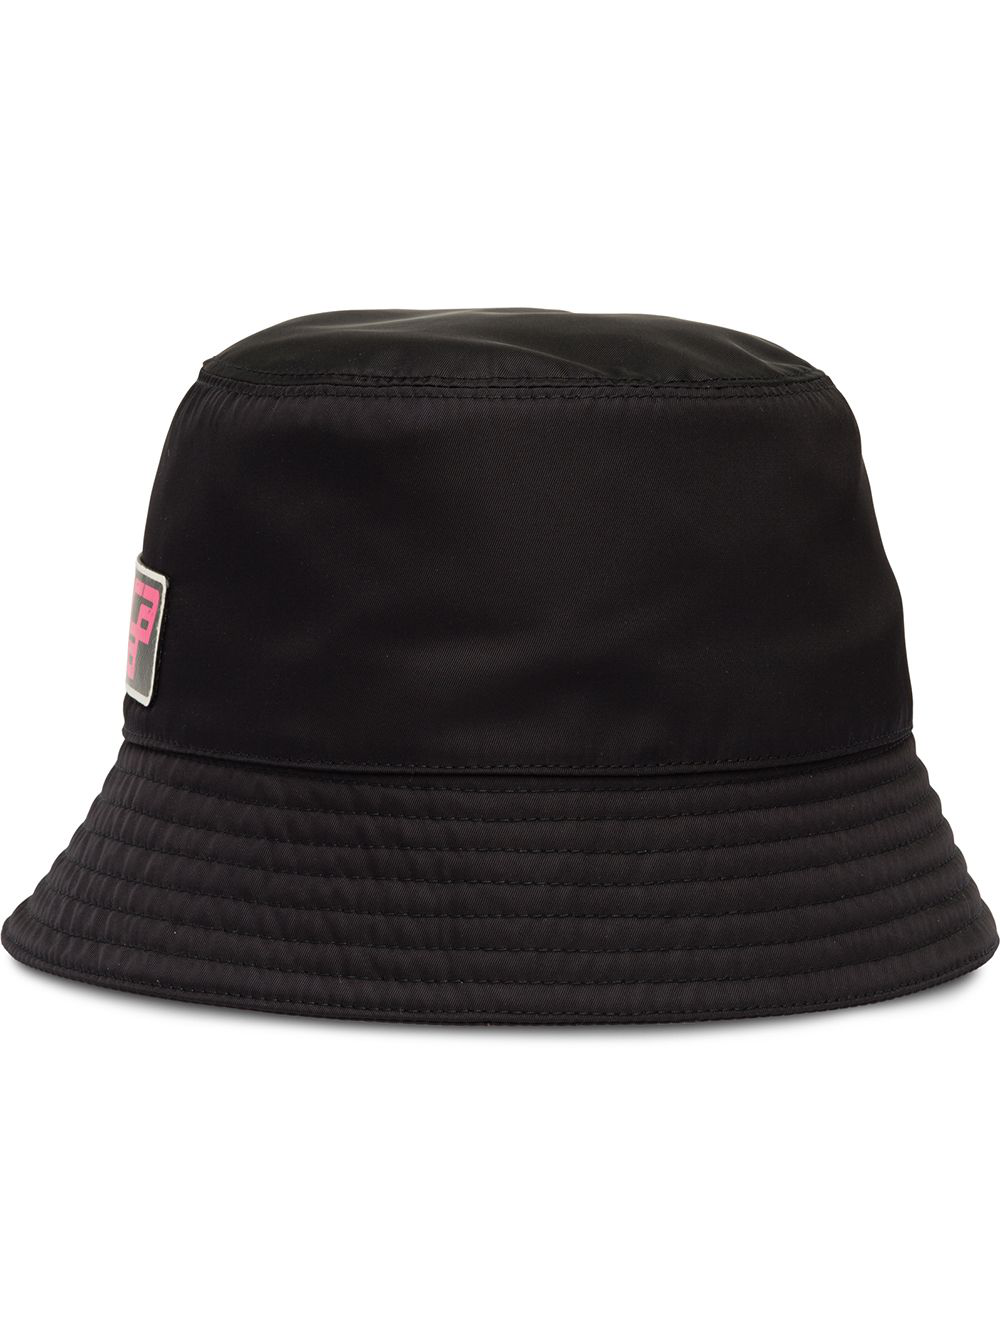 d6344d2bc5a Prada Nylon Cap With Logo - Black